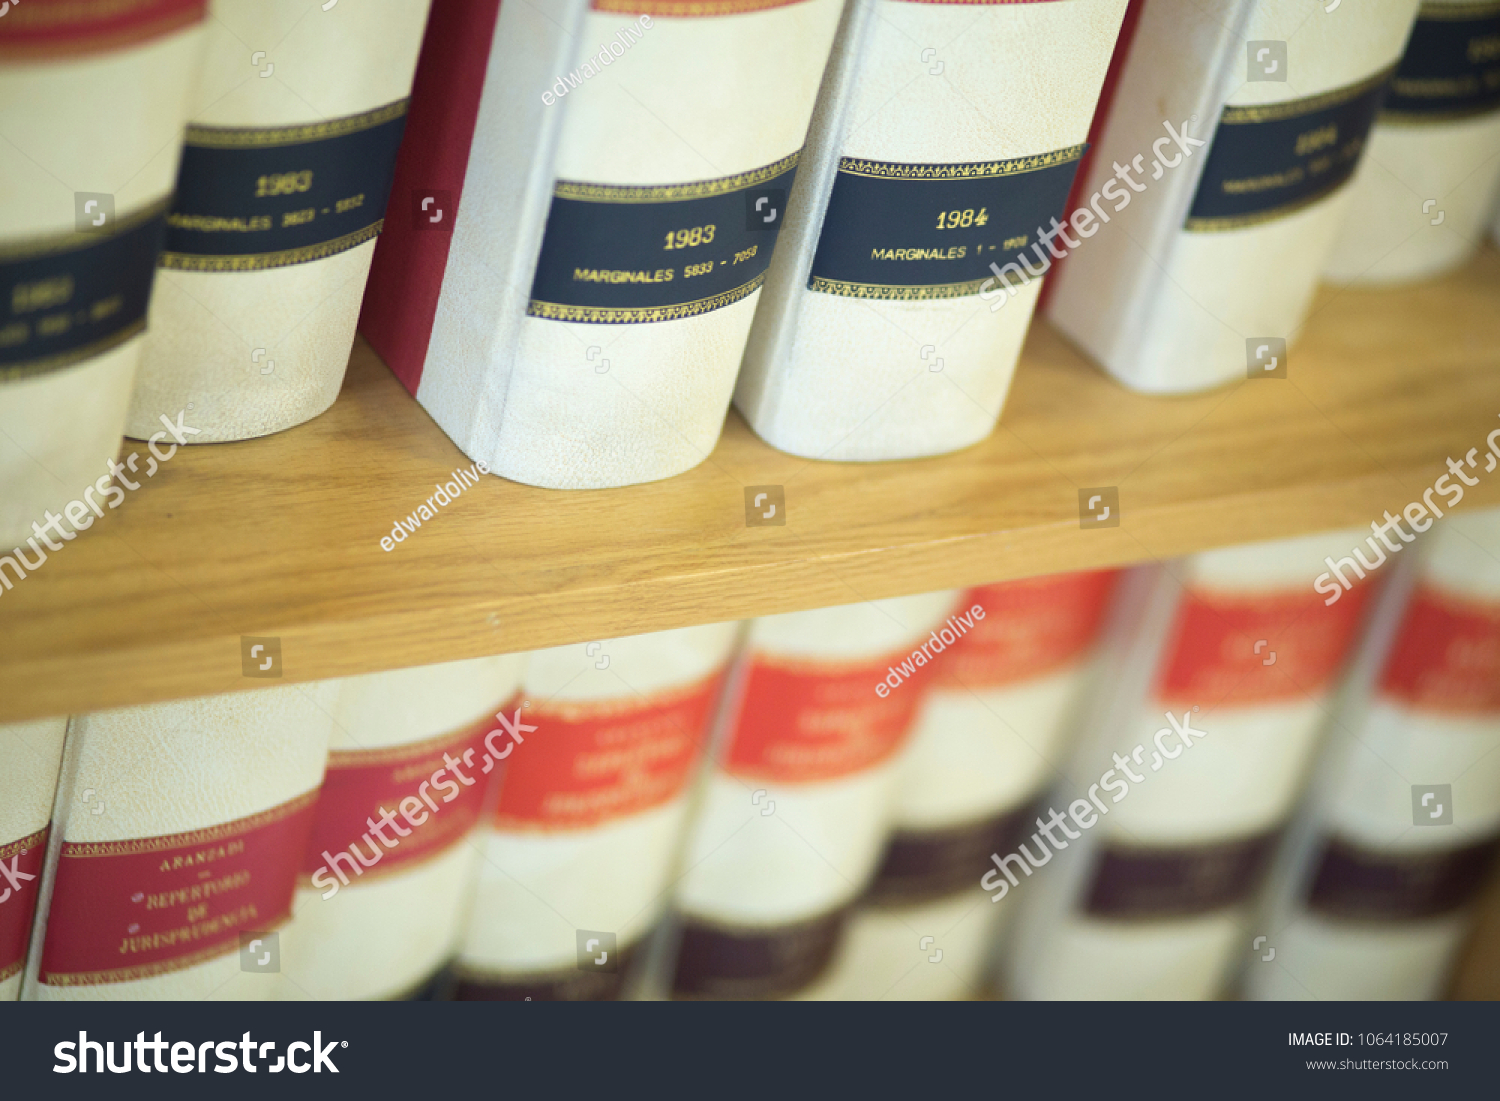 Law Firm Offices Old Legal Report Books On Bookshelf The Book Models Are And